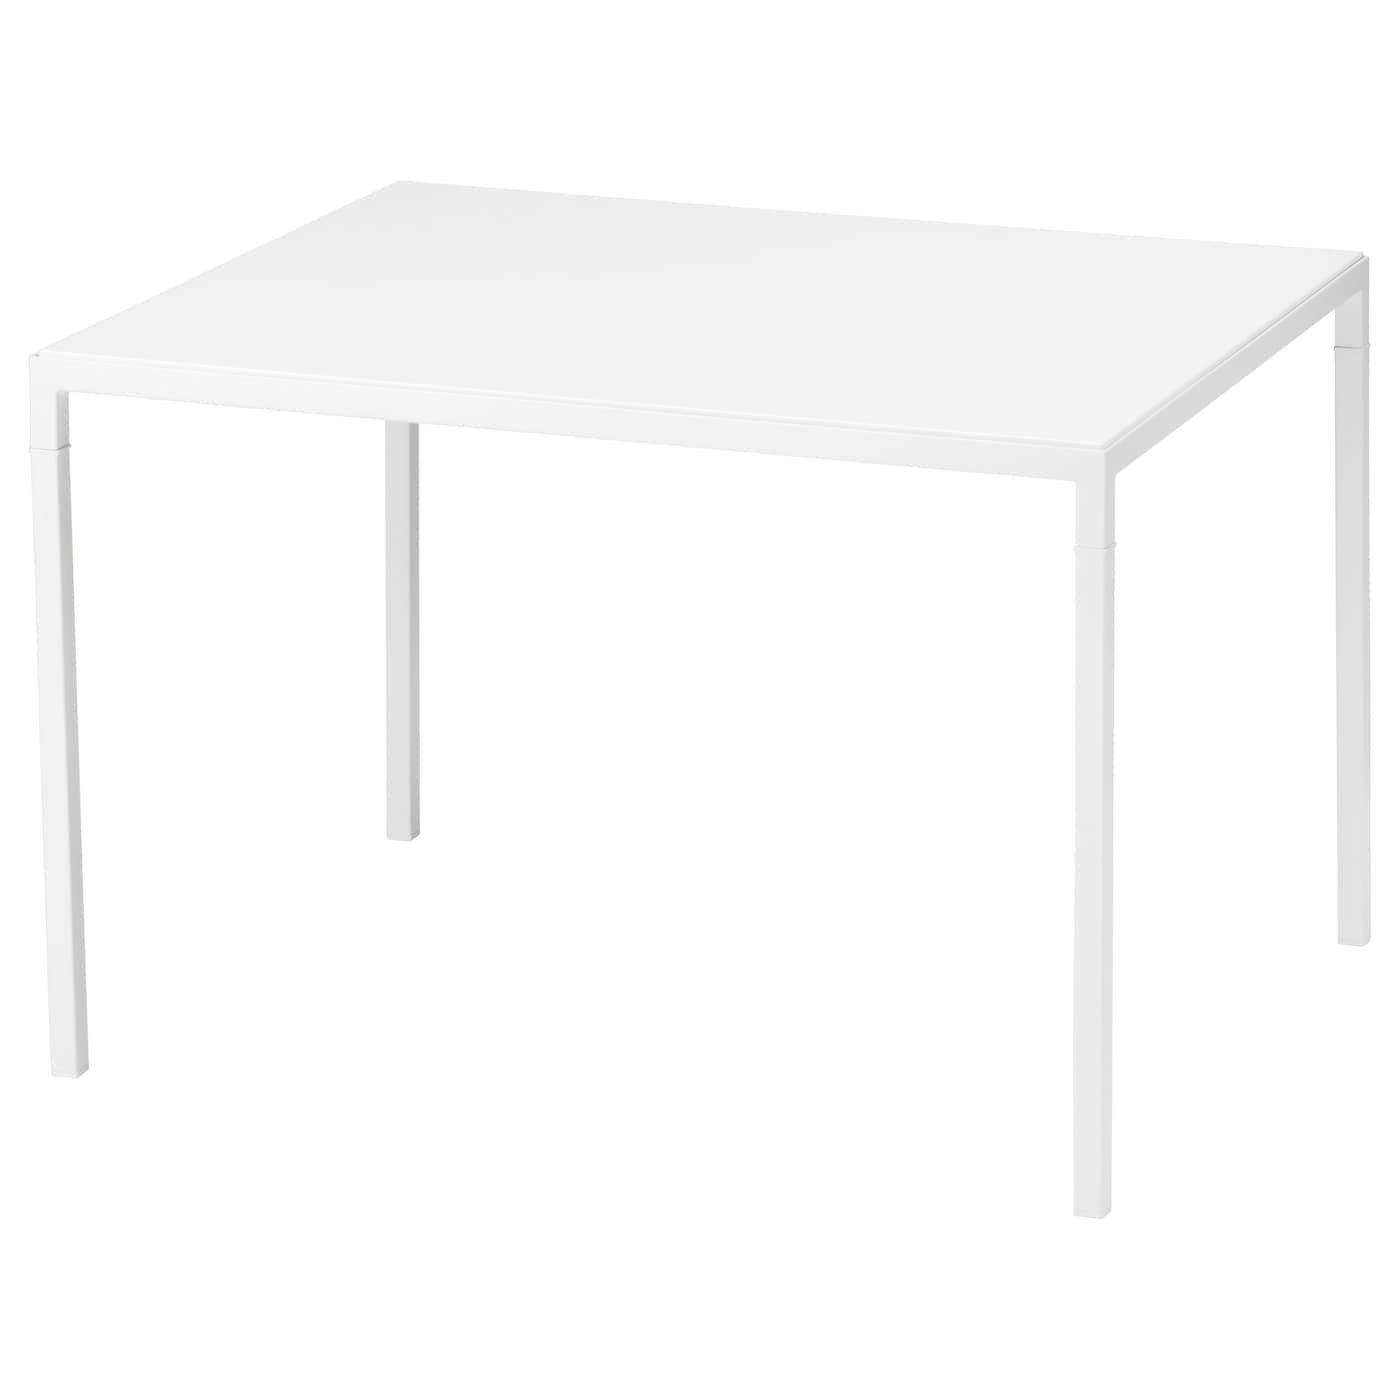 nyboda table basse avec plateau r versible blanc gris 75x60x50 cm ikea. Black Bedroom Furniture Sets. Home Design Ideas